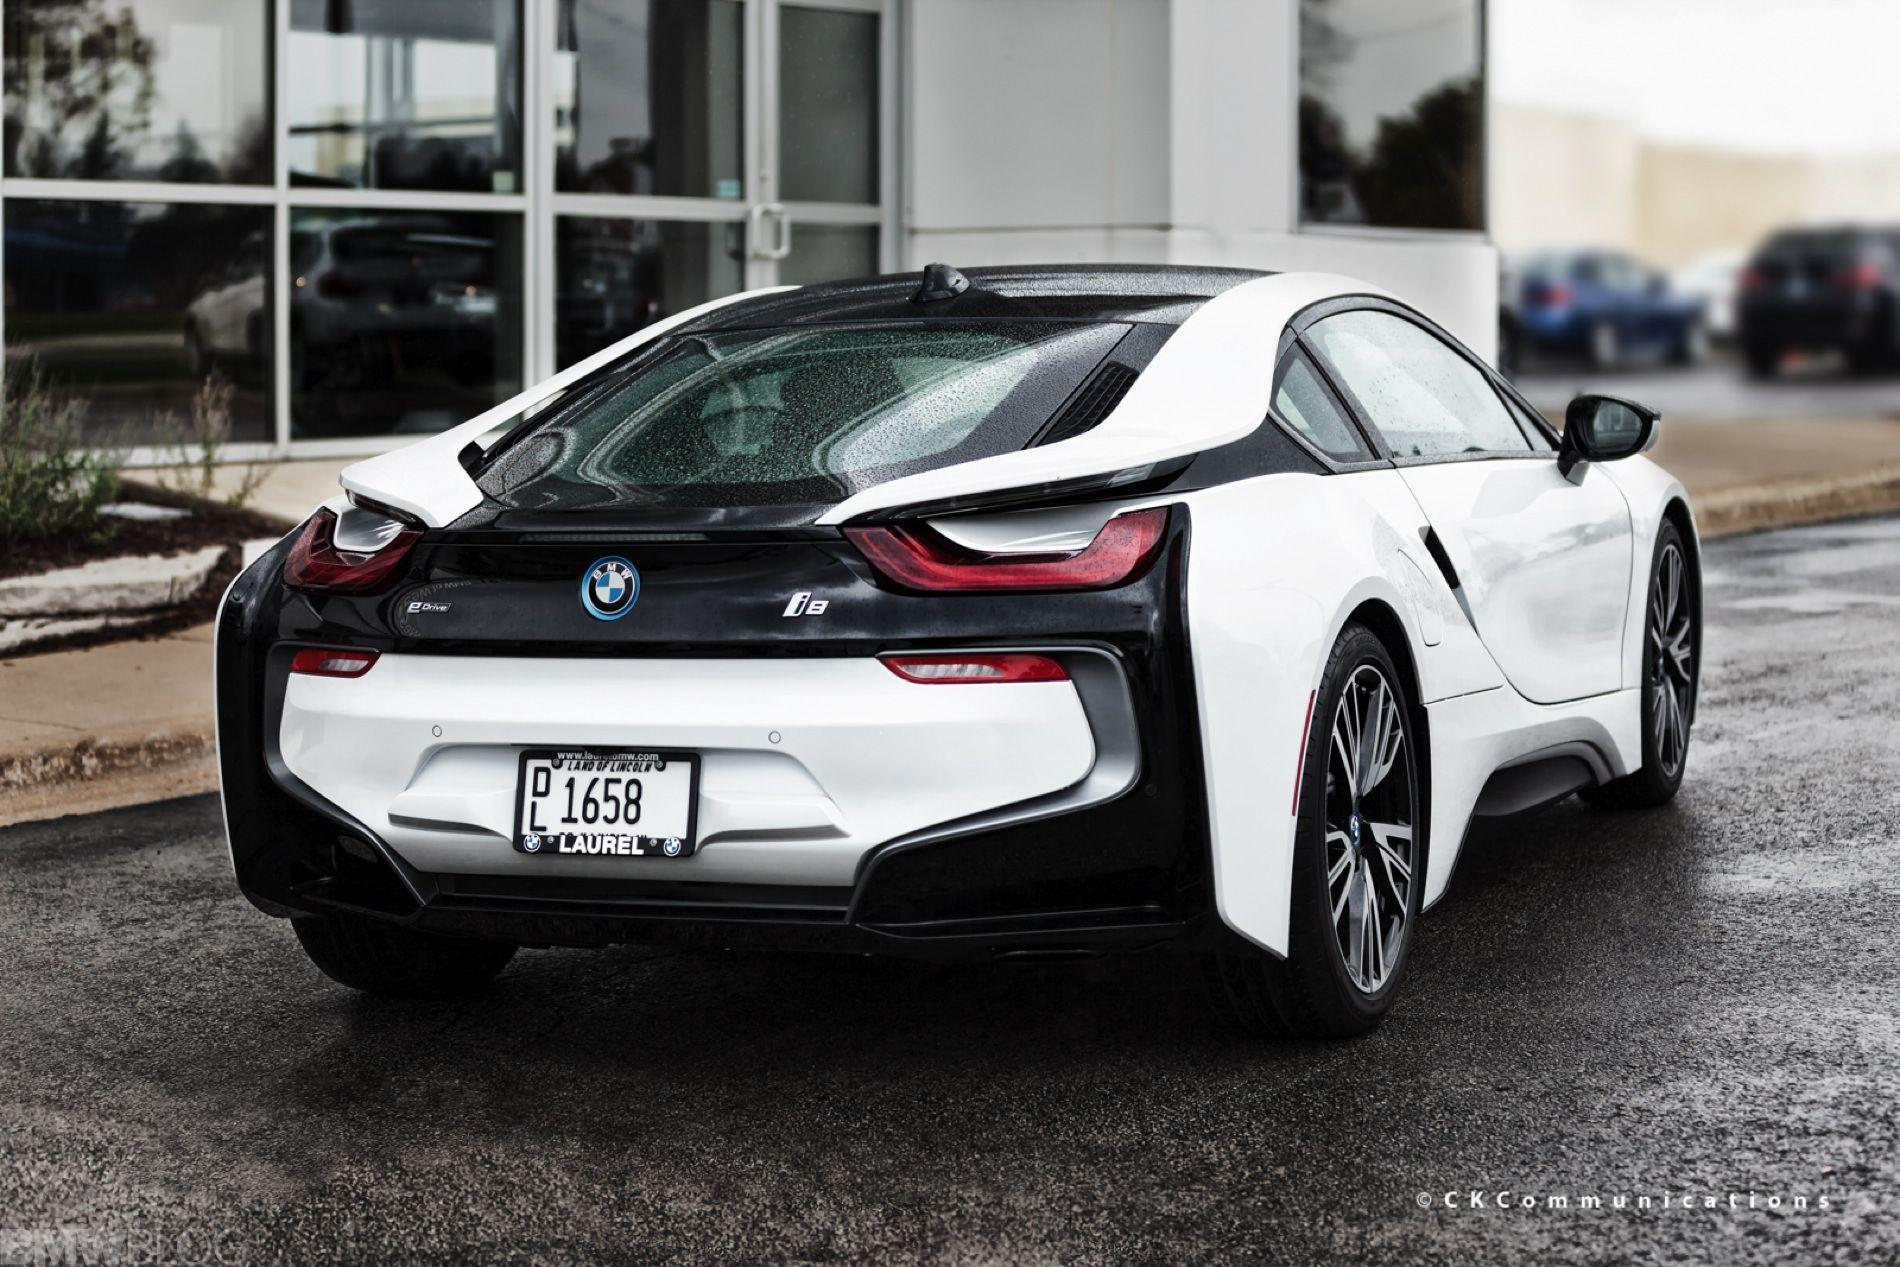 BMW I8 Roadster Wallpapers - Wallpaper Cave